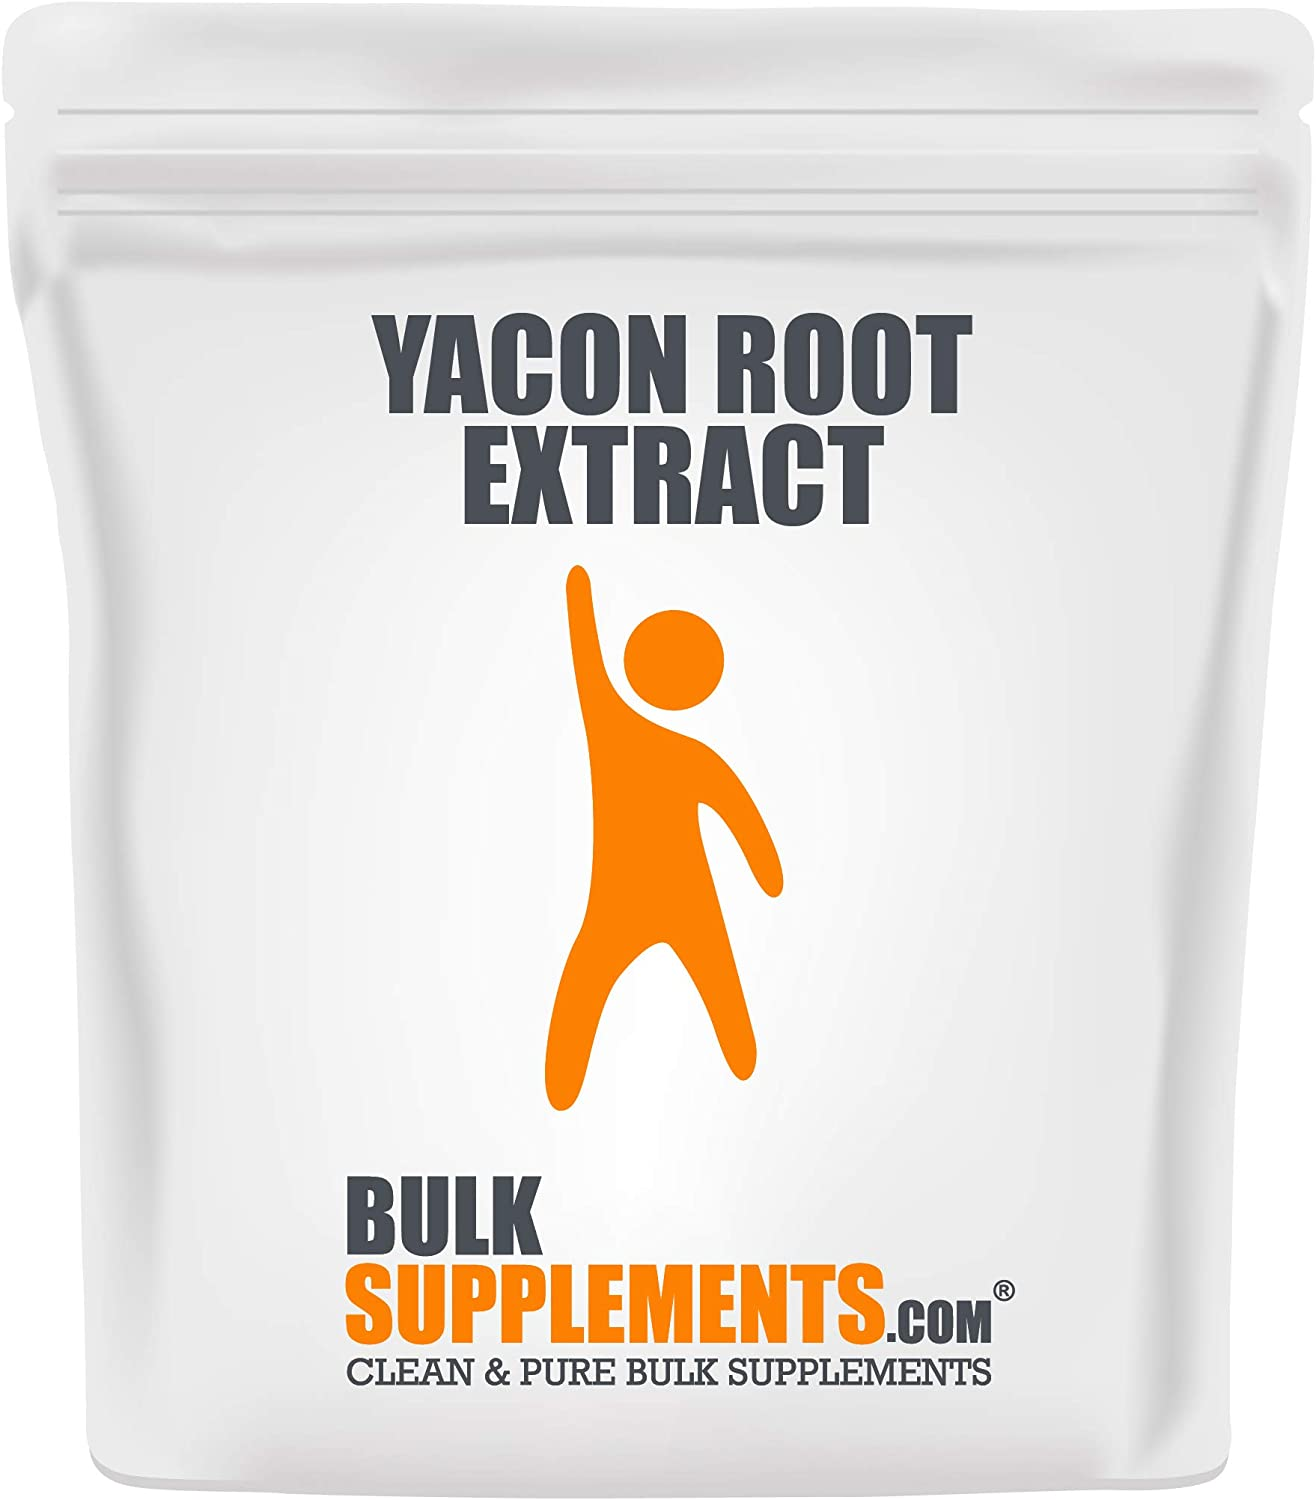 BulkSupplements.com Yacon Root Extract 5 - Max 71% OFF Seattle Mall Kilograms 11 lbs